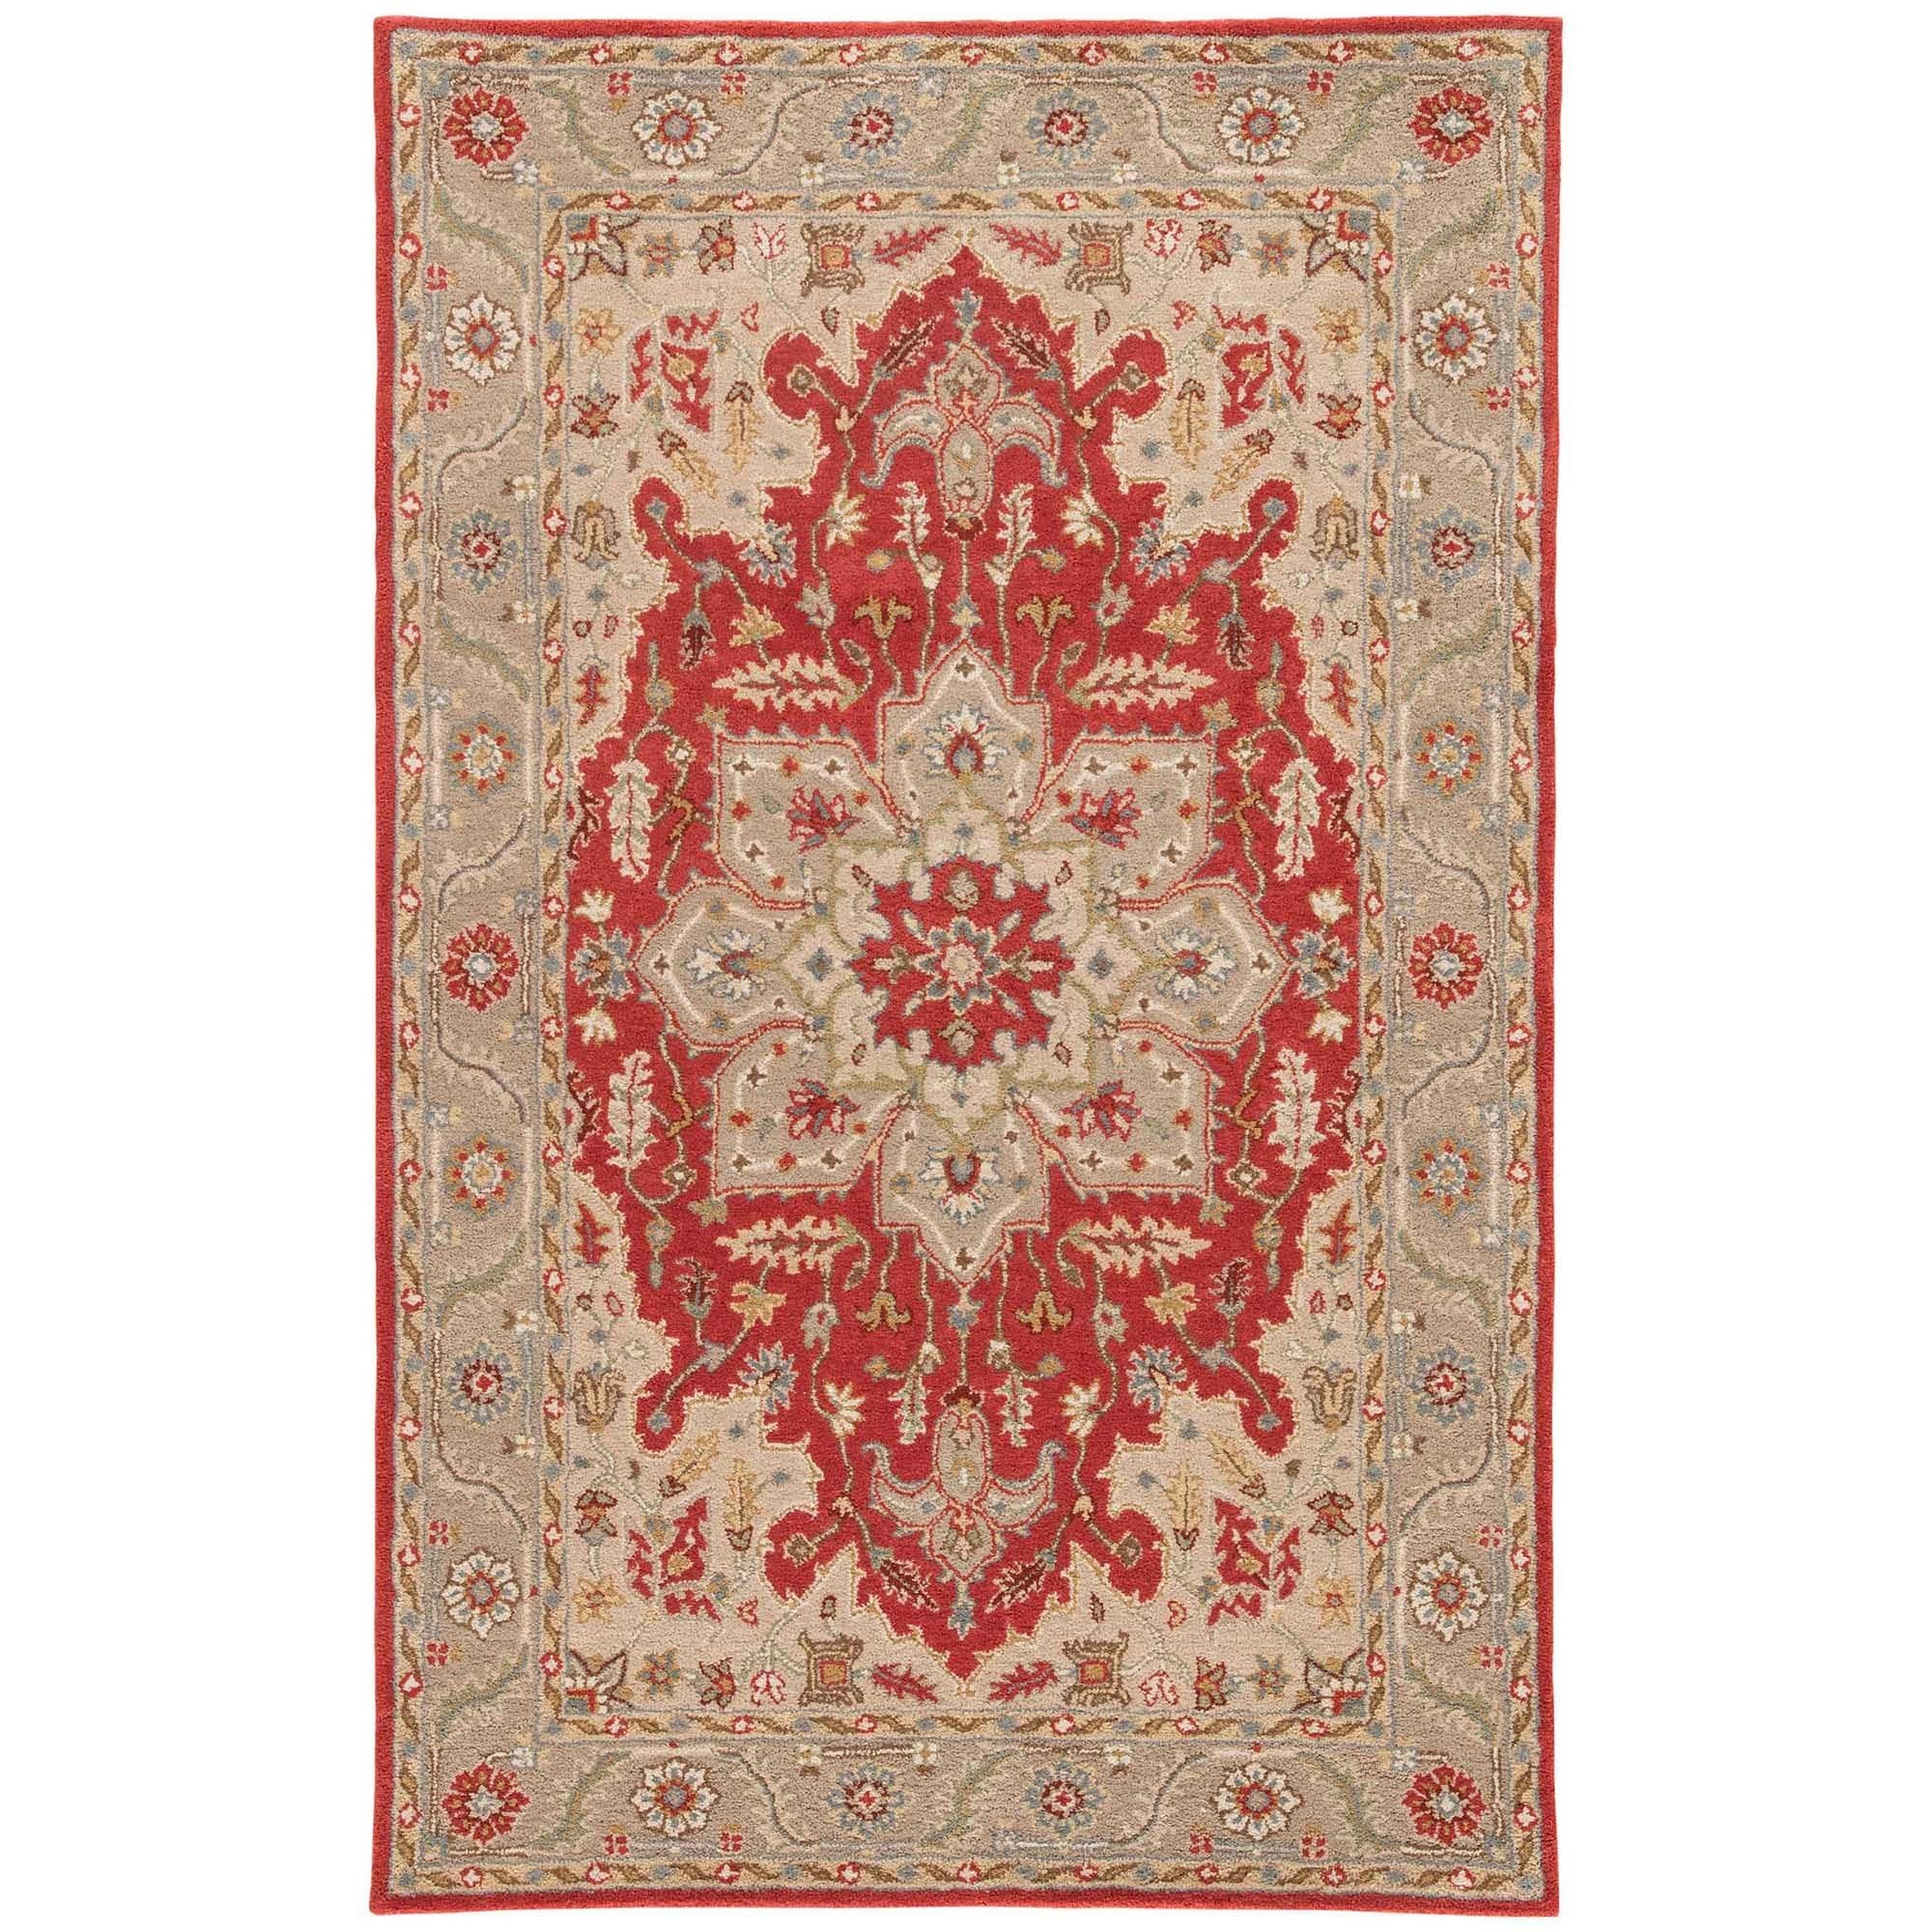 Sage Handmade Medallion Red Gray Area Rug 2 X 3 On Free Shipping Today 10002594